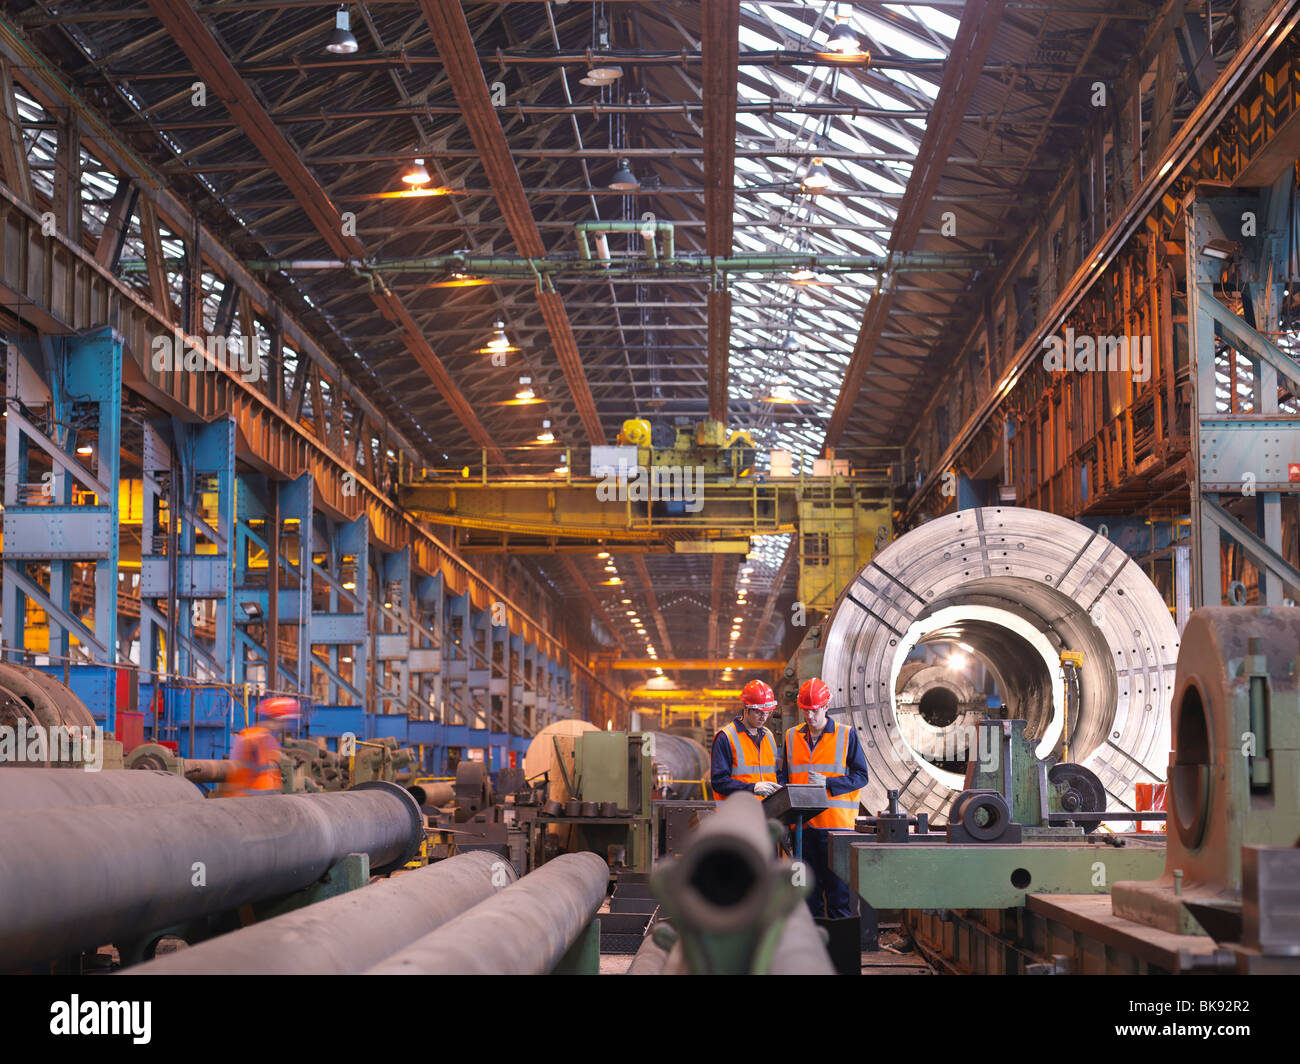 Engineers In Steel Factory With Lathe - Stock Image